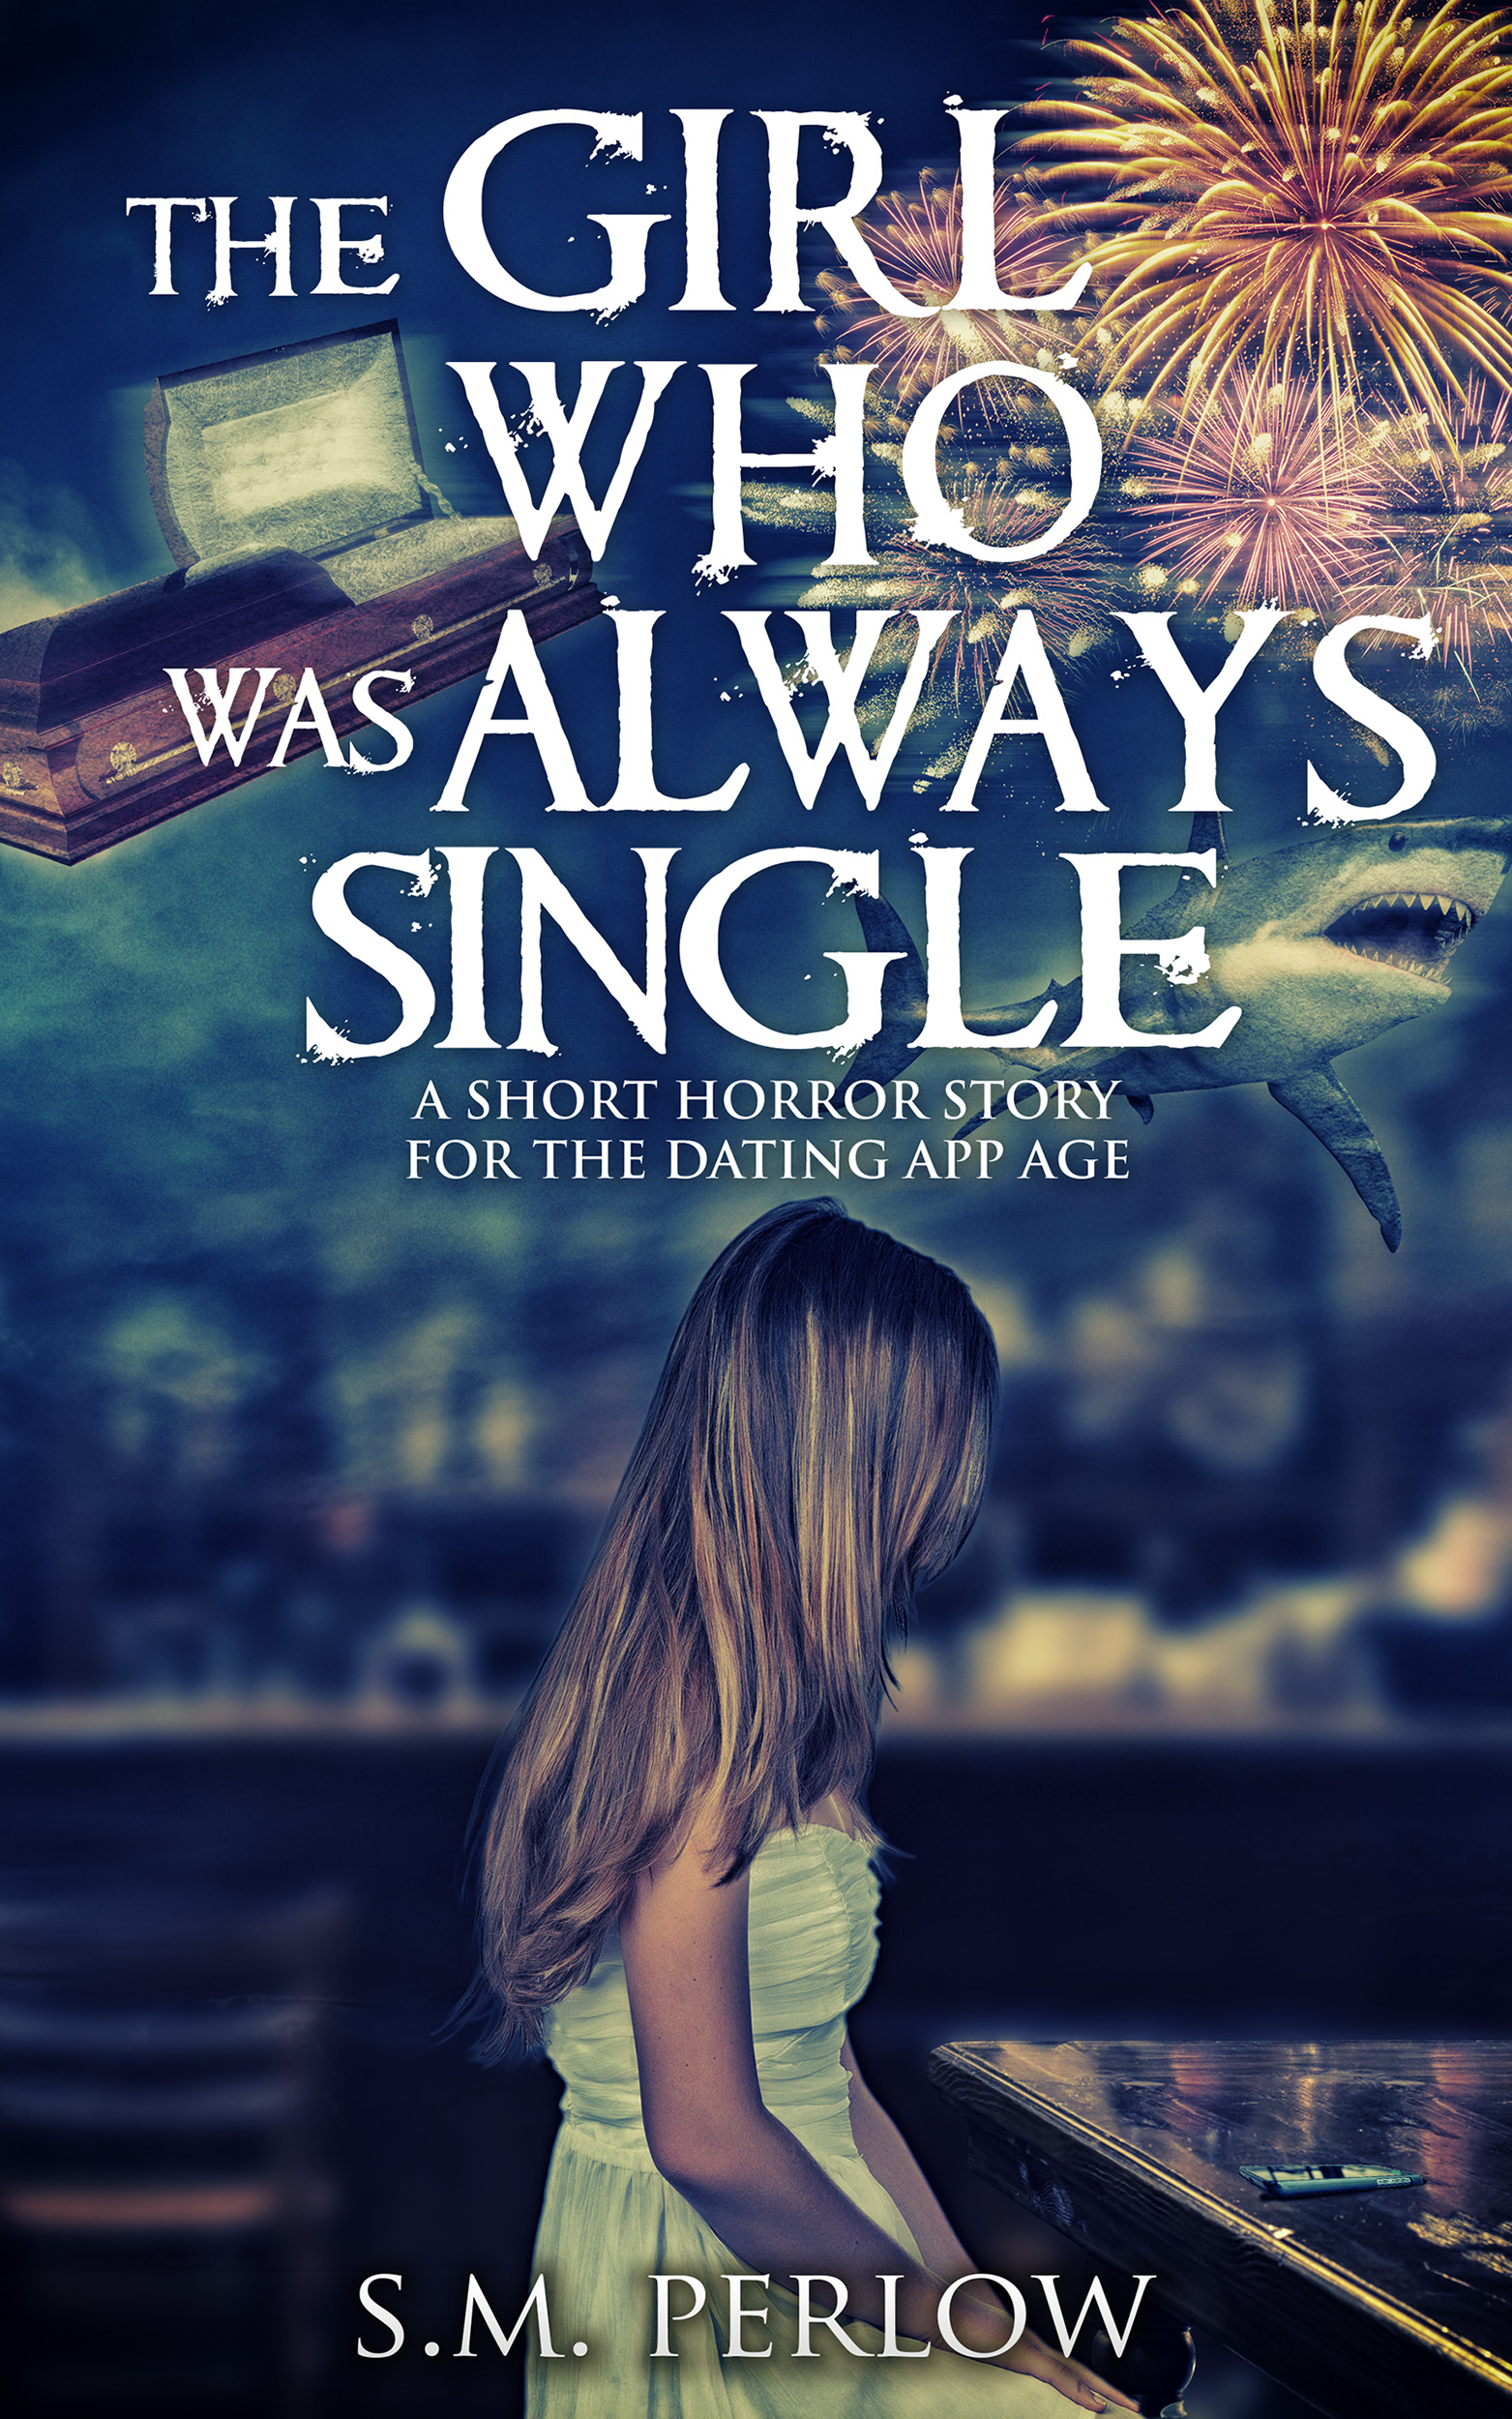 Smashwords – The Girl Who Was Always Single - A Short Horror Story